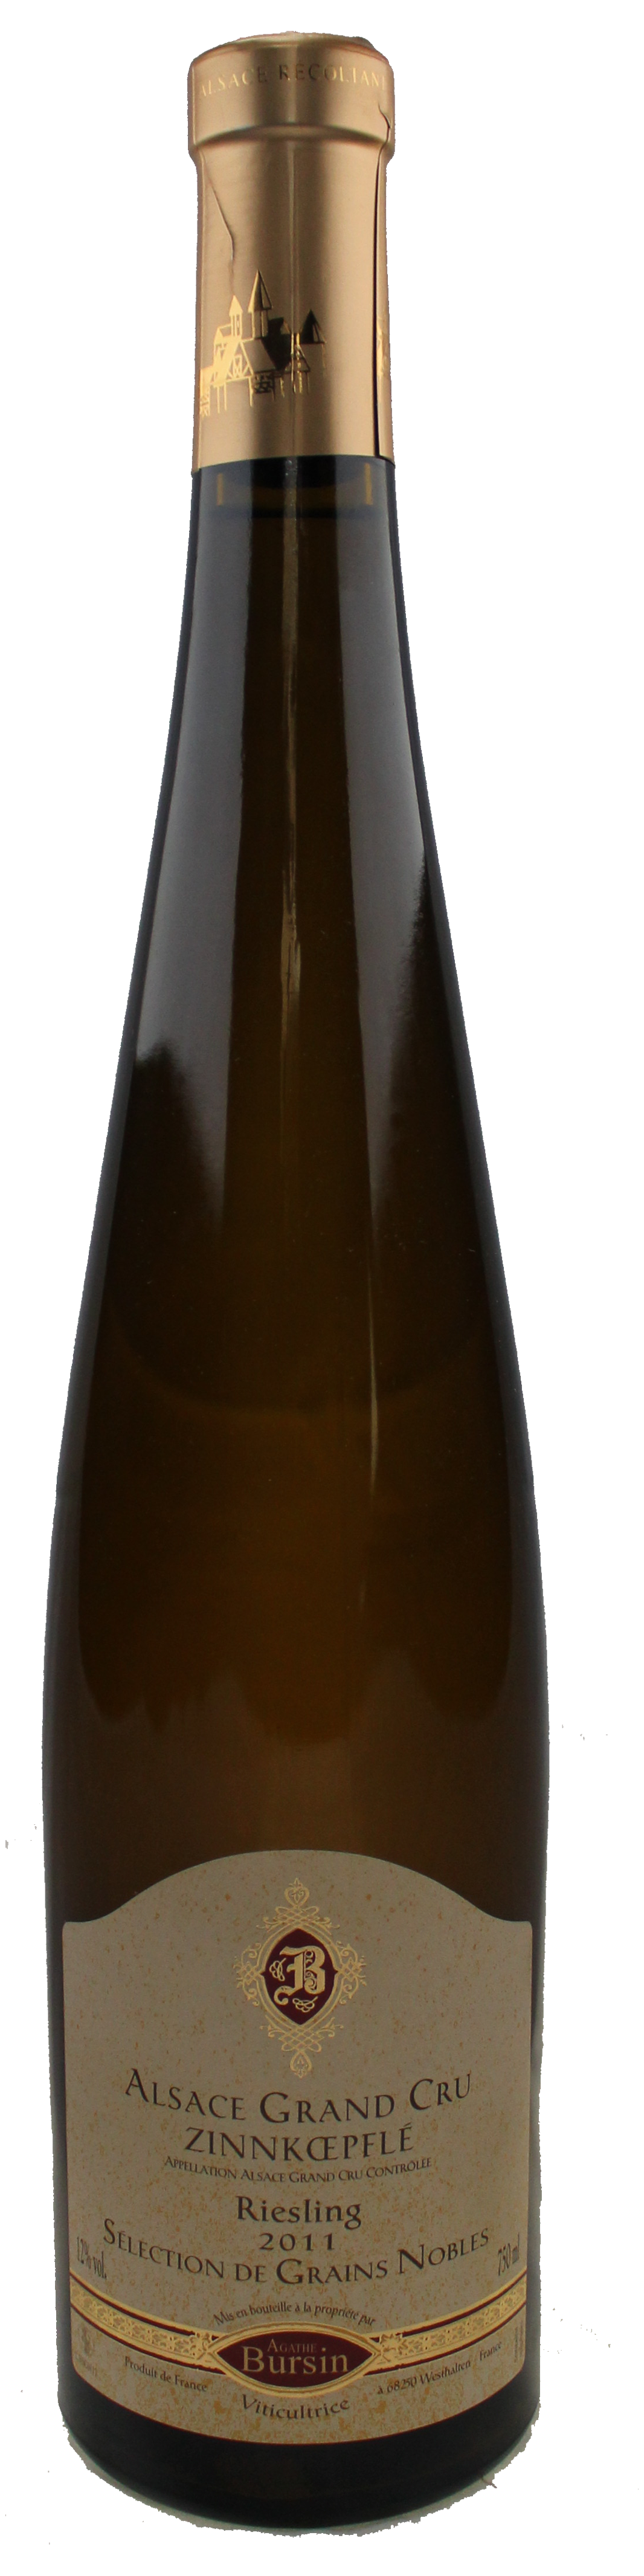 Image of product Riesling Grand Cru Zinnkoepfle Select Grains Noble